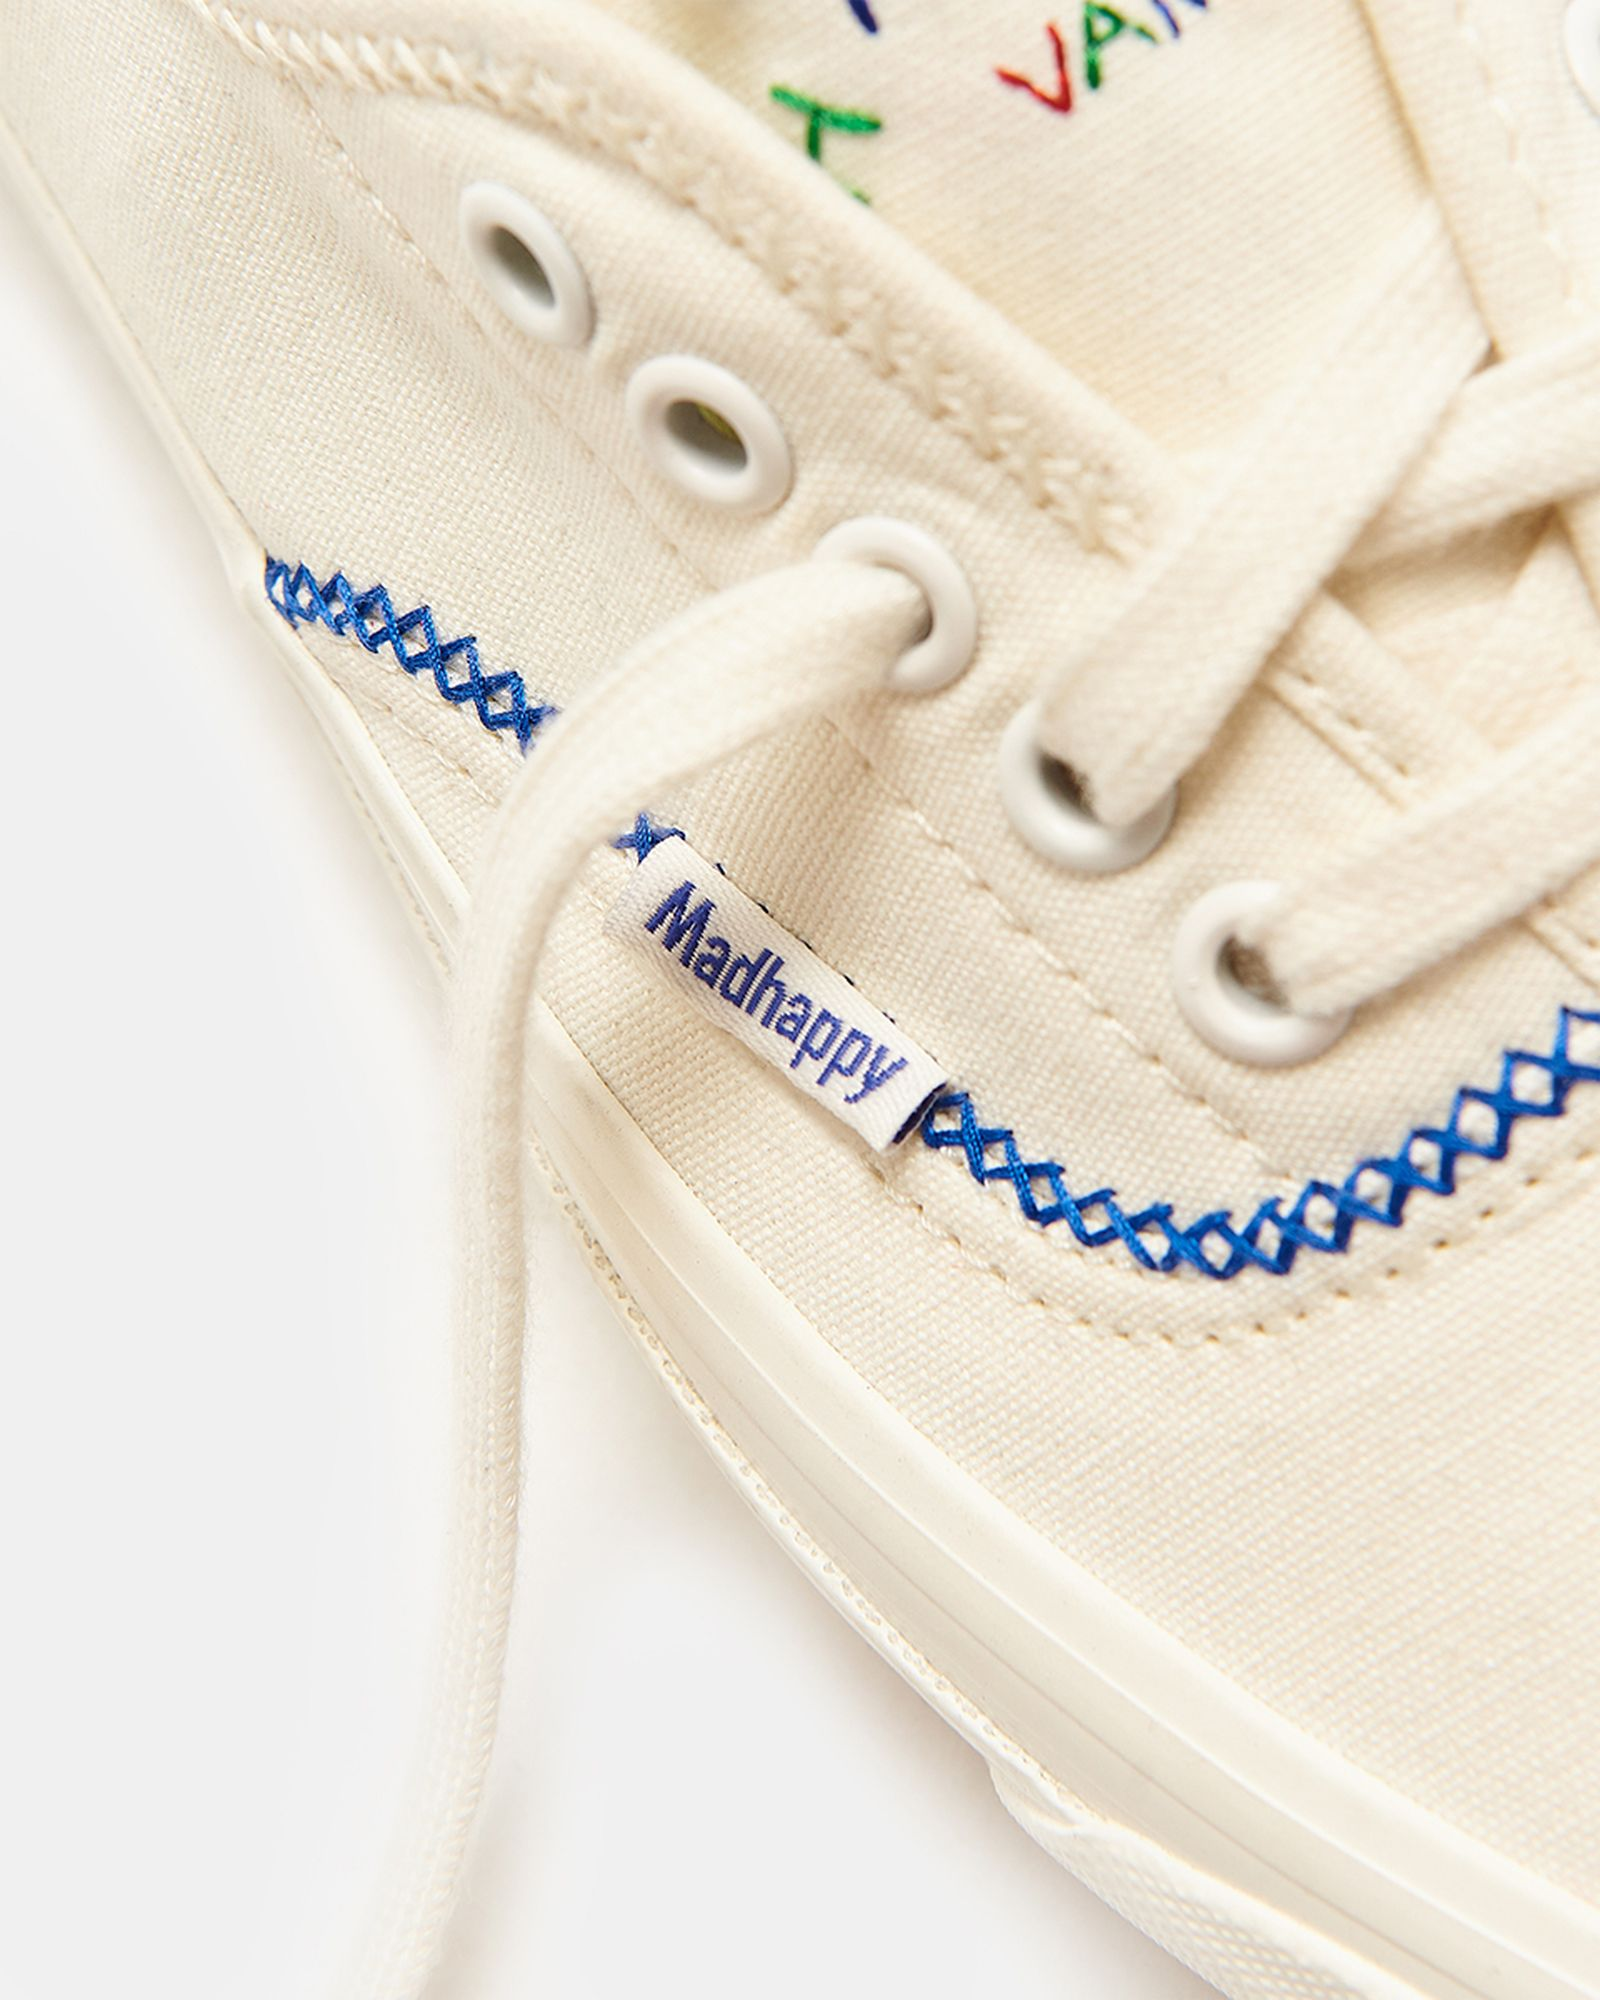 madhappy-vault-by-vans-og-style-43-lx-release-date-price-04